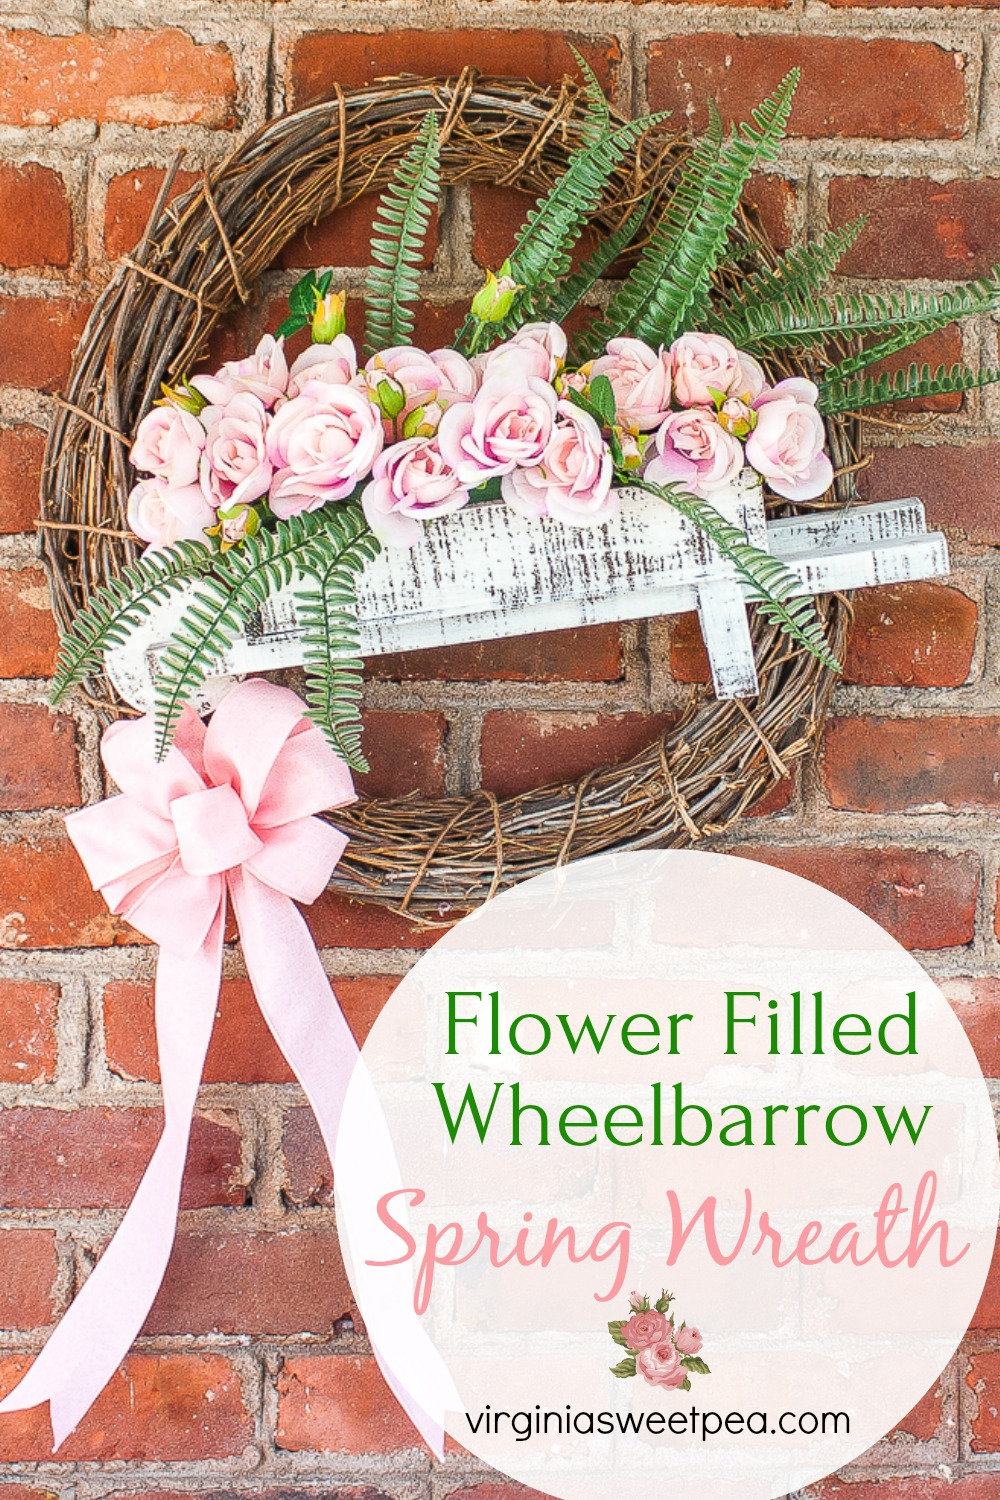 Flower Filled Wheelbarrow Spring Wreath - Learn how to make a spring wreath using a small wheelbarrow. Fill it with flowers to match the decor of your home. #springwreath #wreath #wreathidea #springcraft